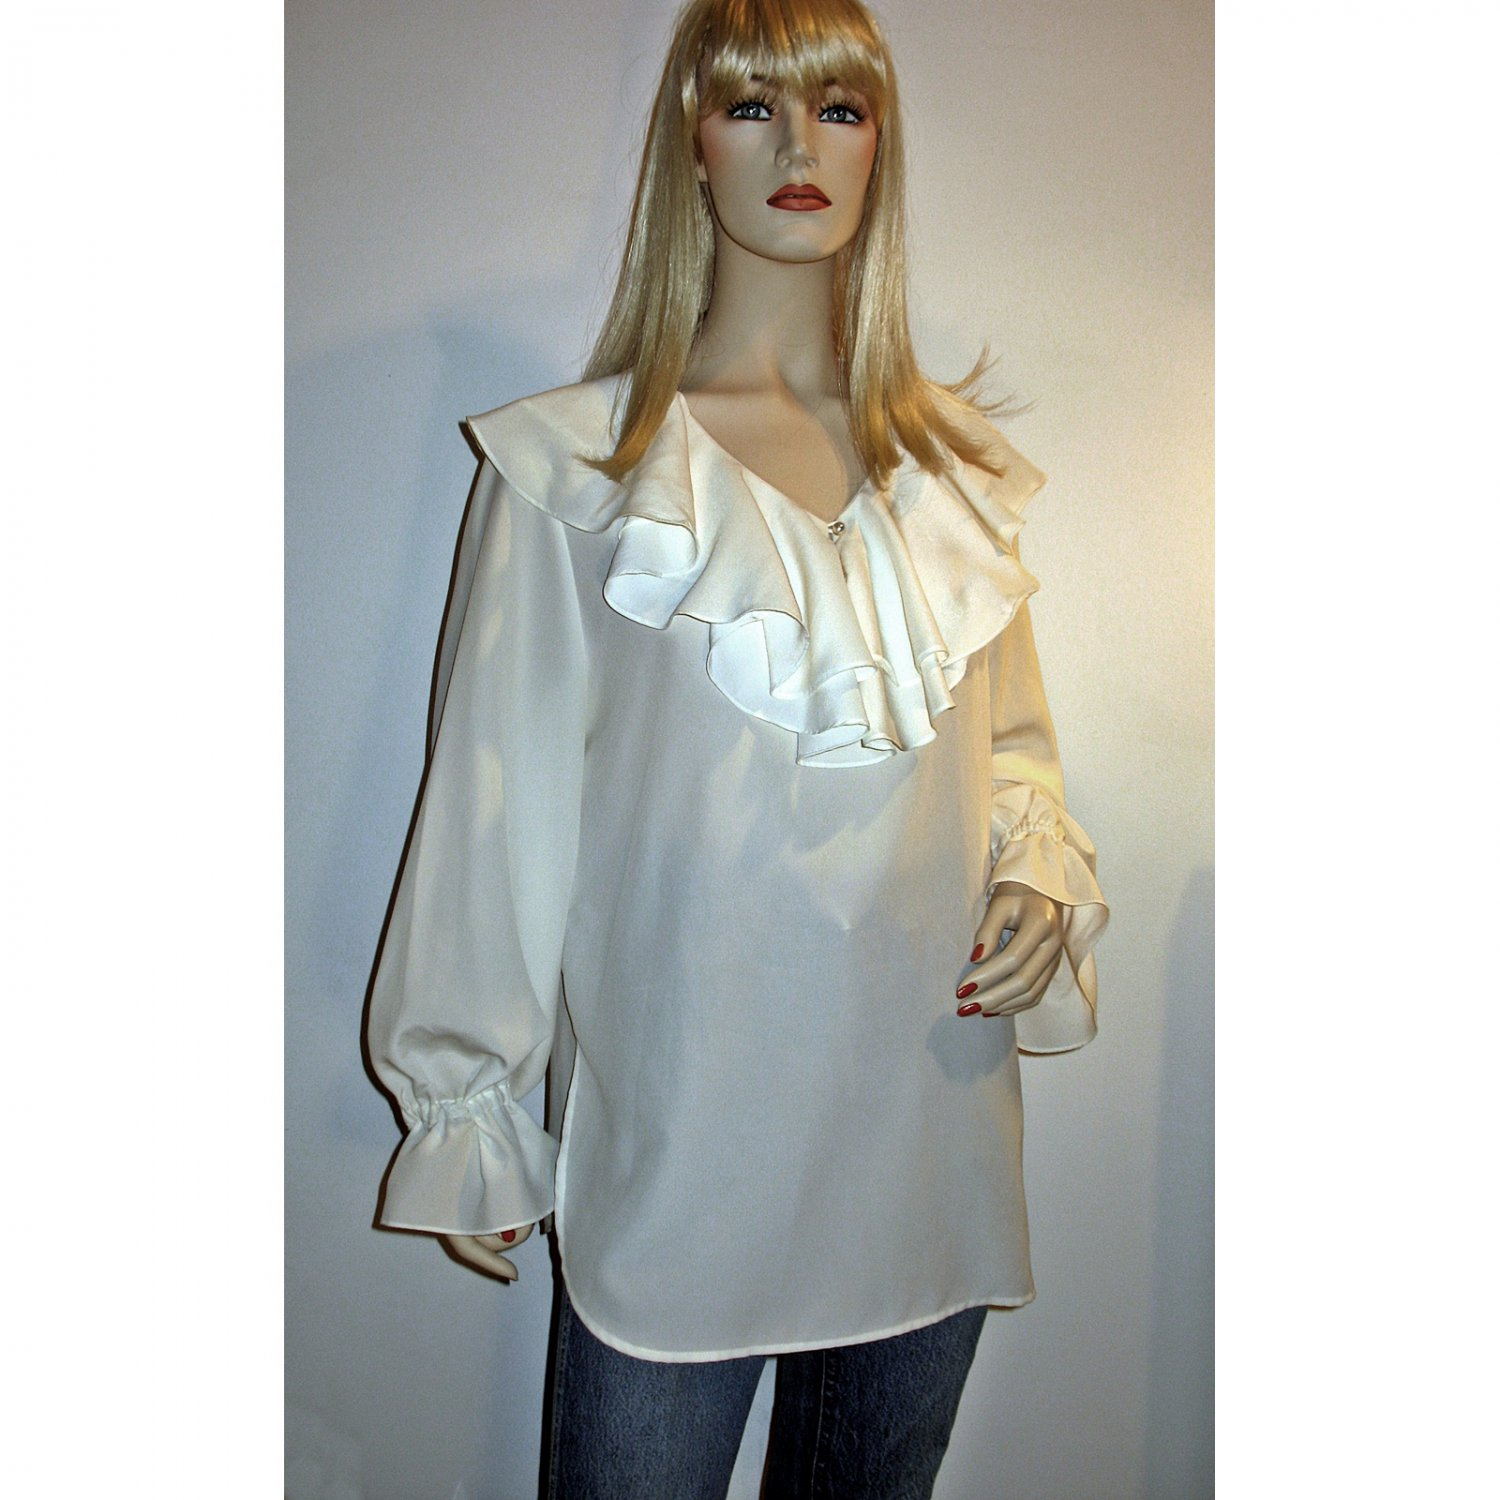 Vtg 80s Tunic Blouse/DeeprRuffled Collar/Long Billowy Sleeves & Ruffled cuffs - One Size